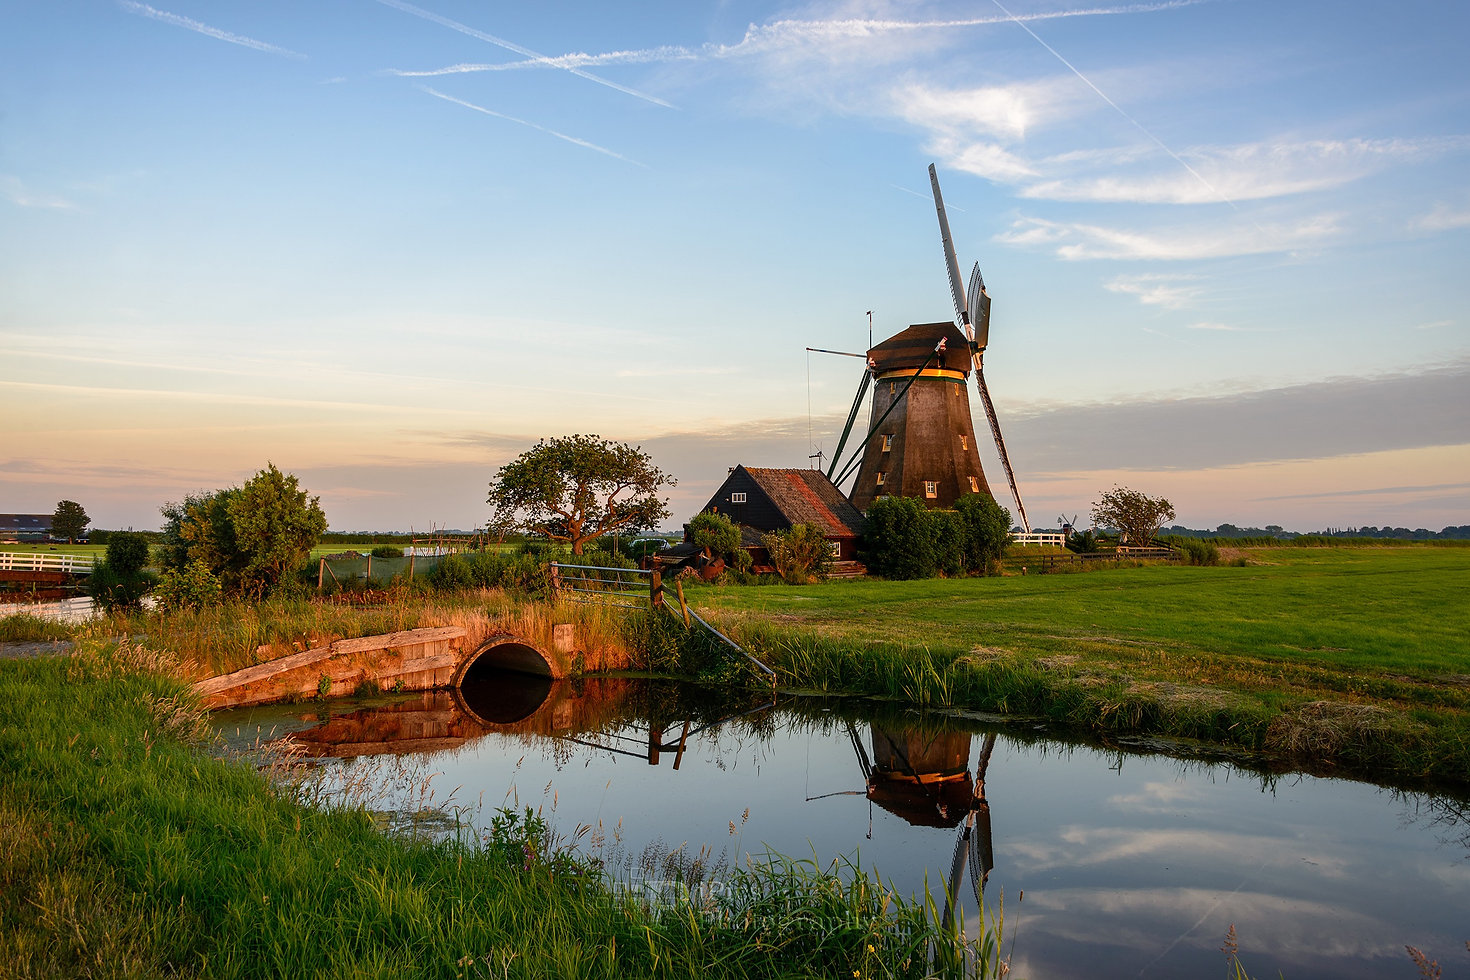 Windmill with a ditch in a landscape in